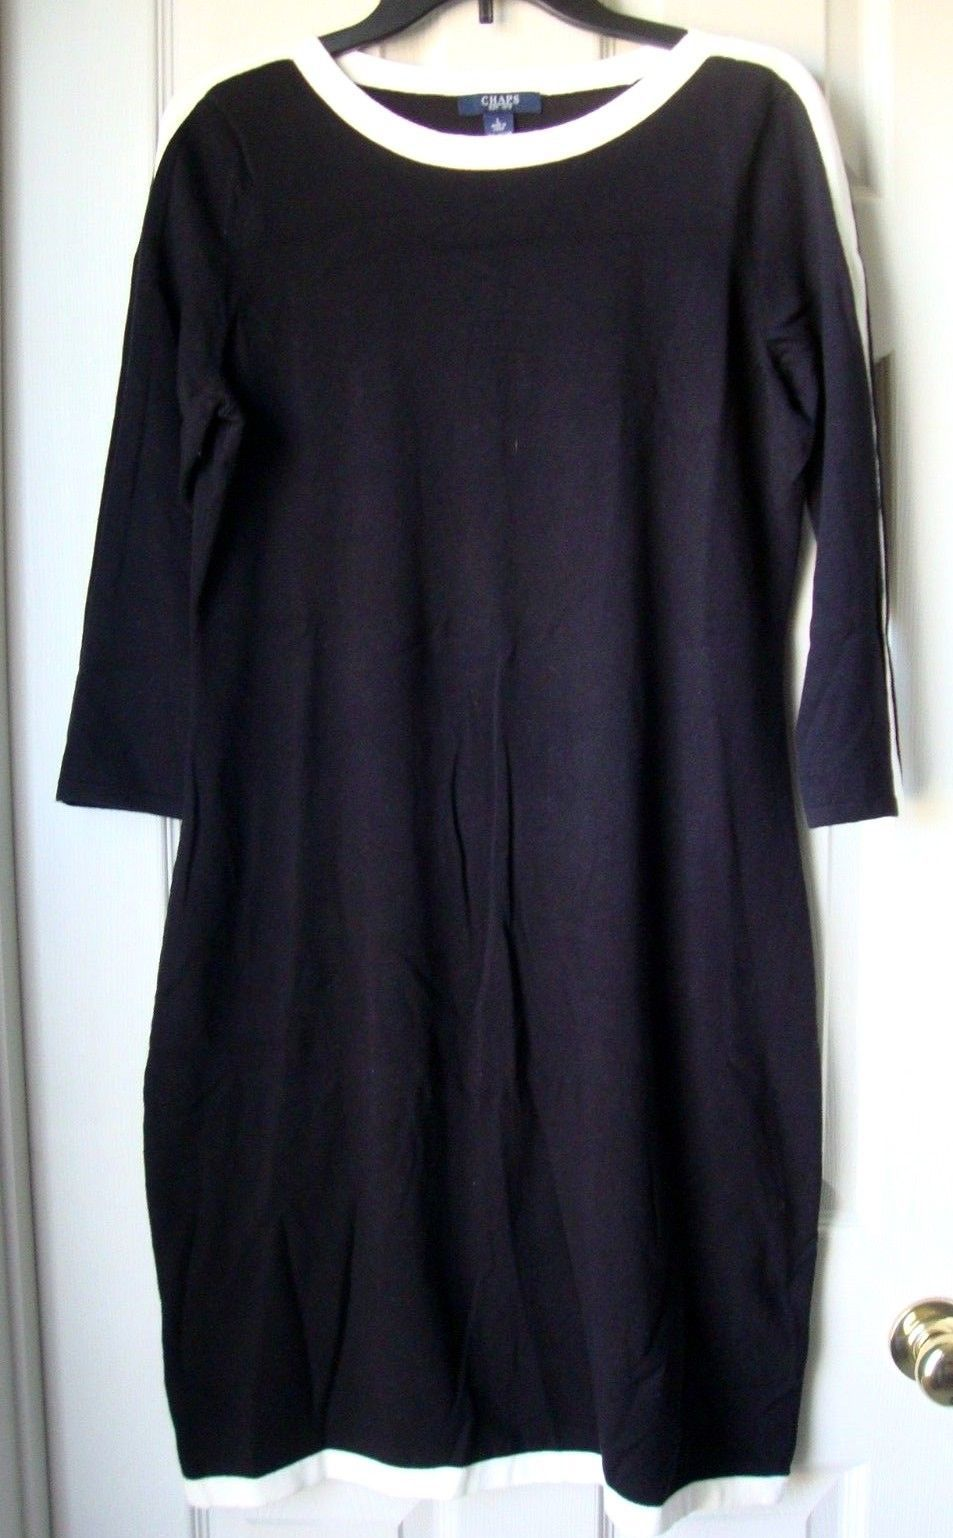 09474c1f8a8 Chaps Women Colorblock Sweater Dress Black and 50 similar items